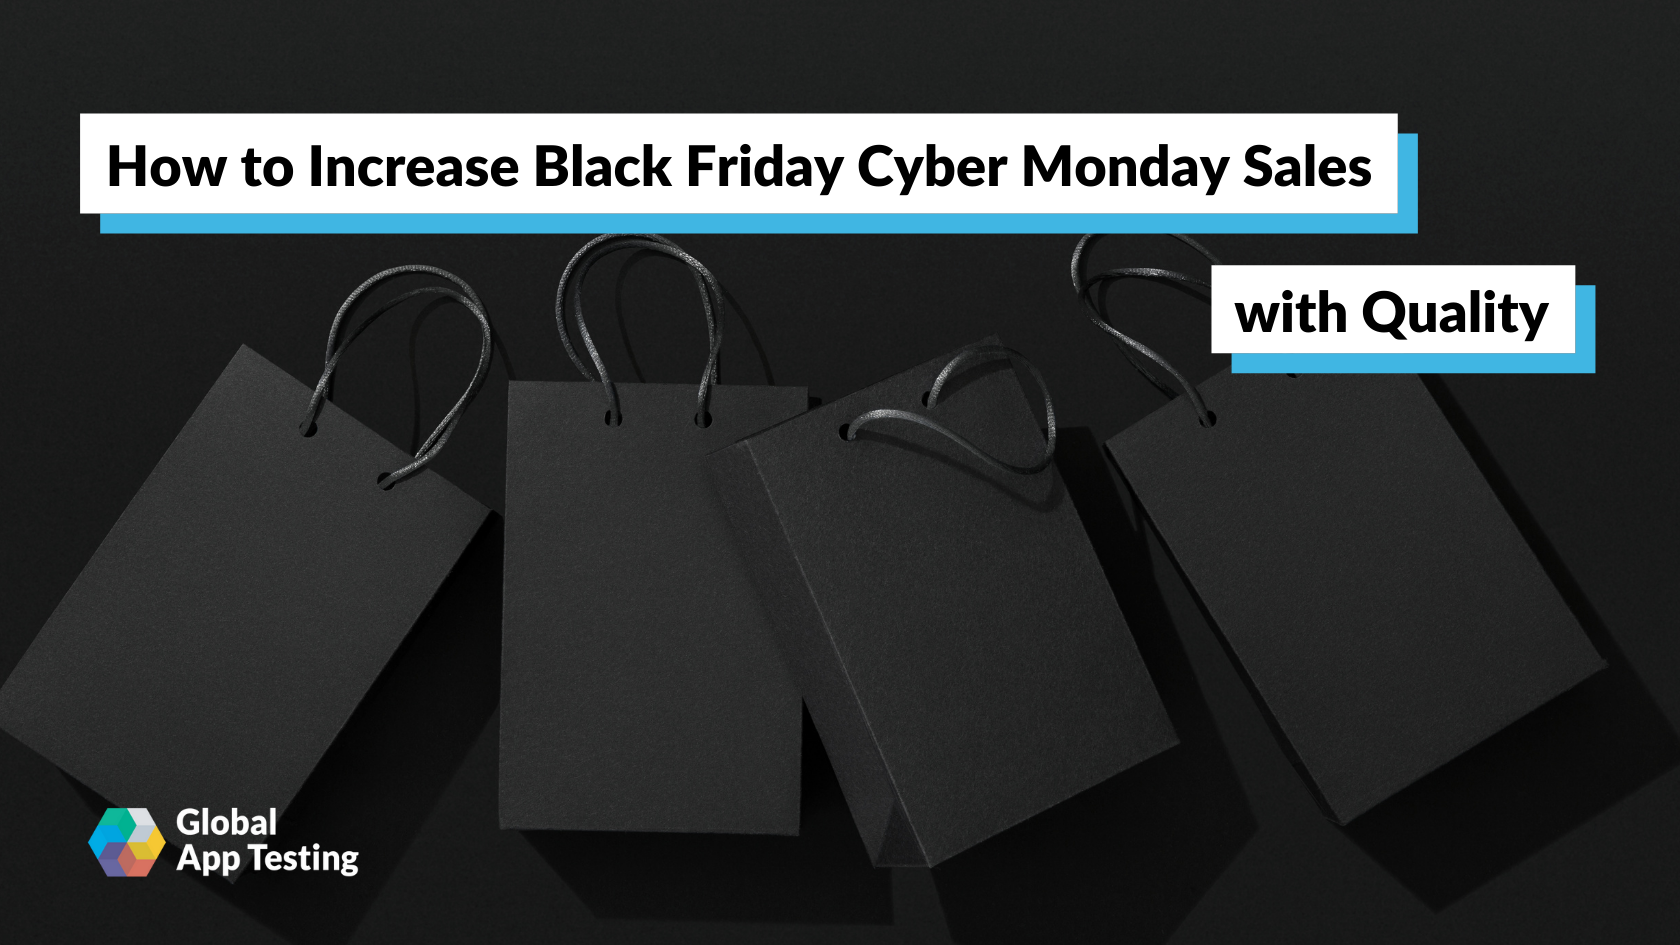 How to Increase Black Friday Cyber Monday Sales with Quality